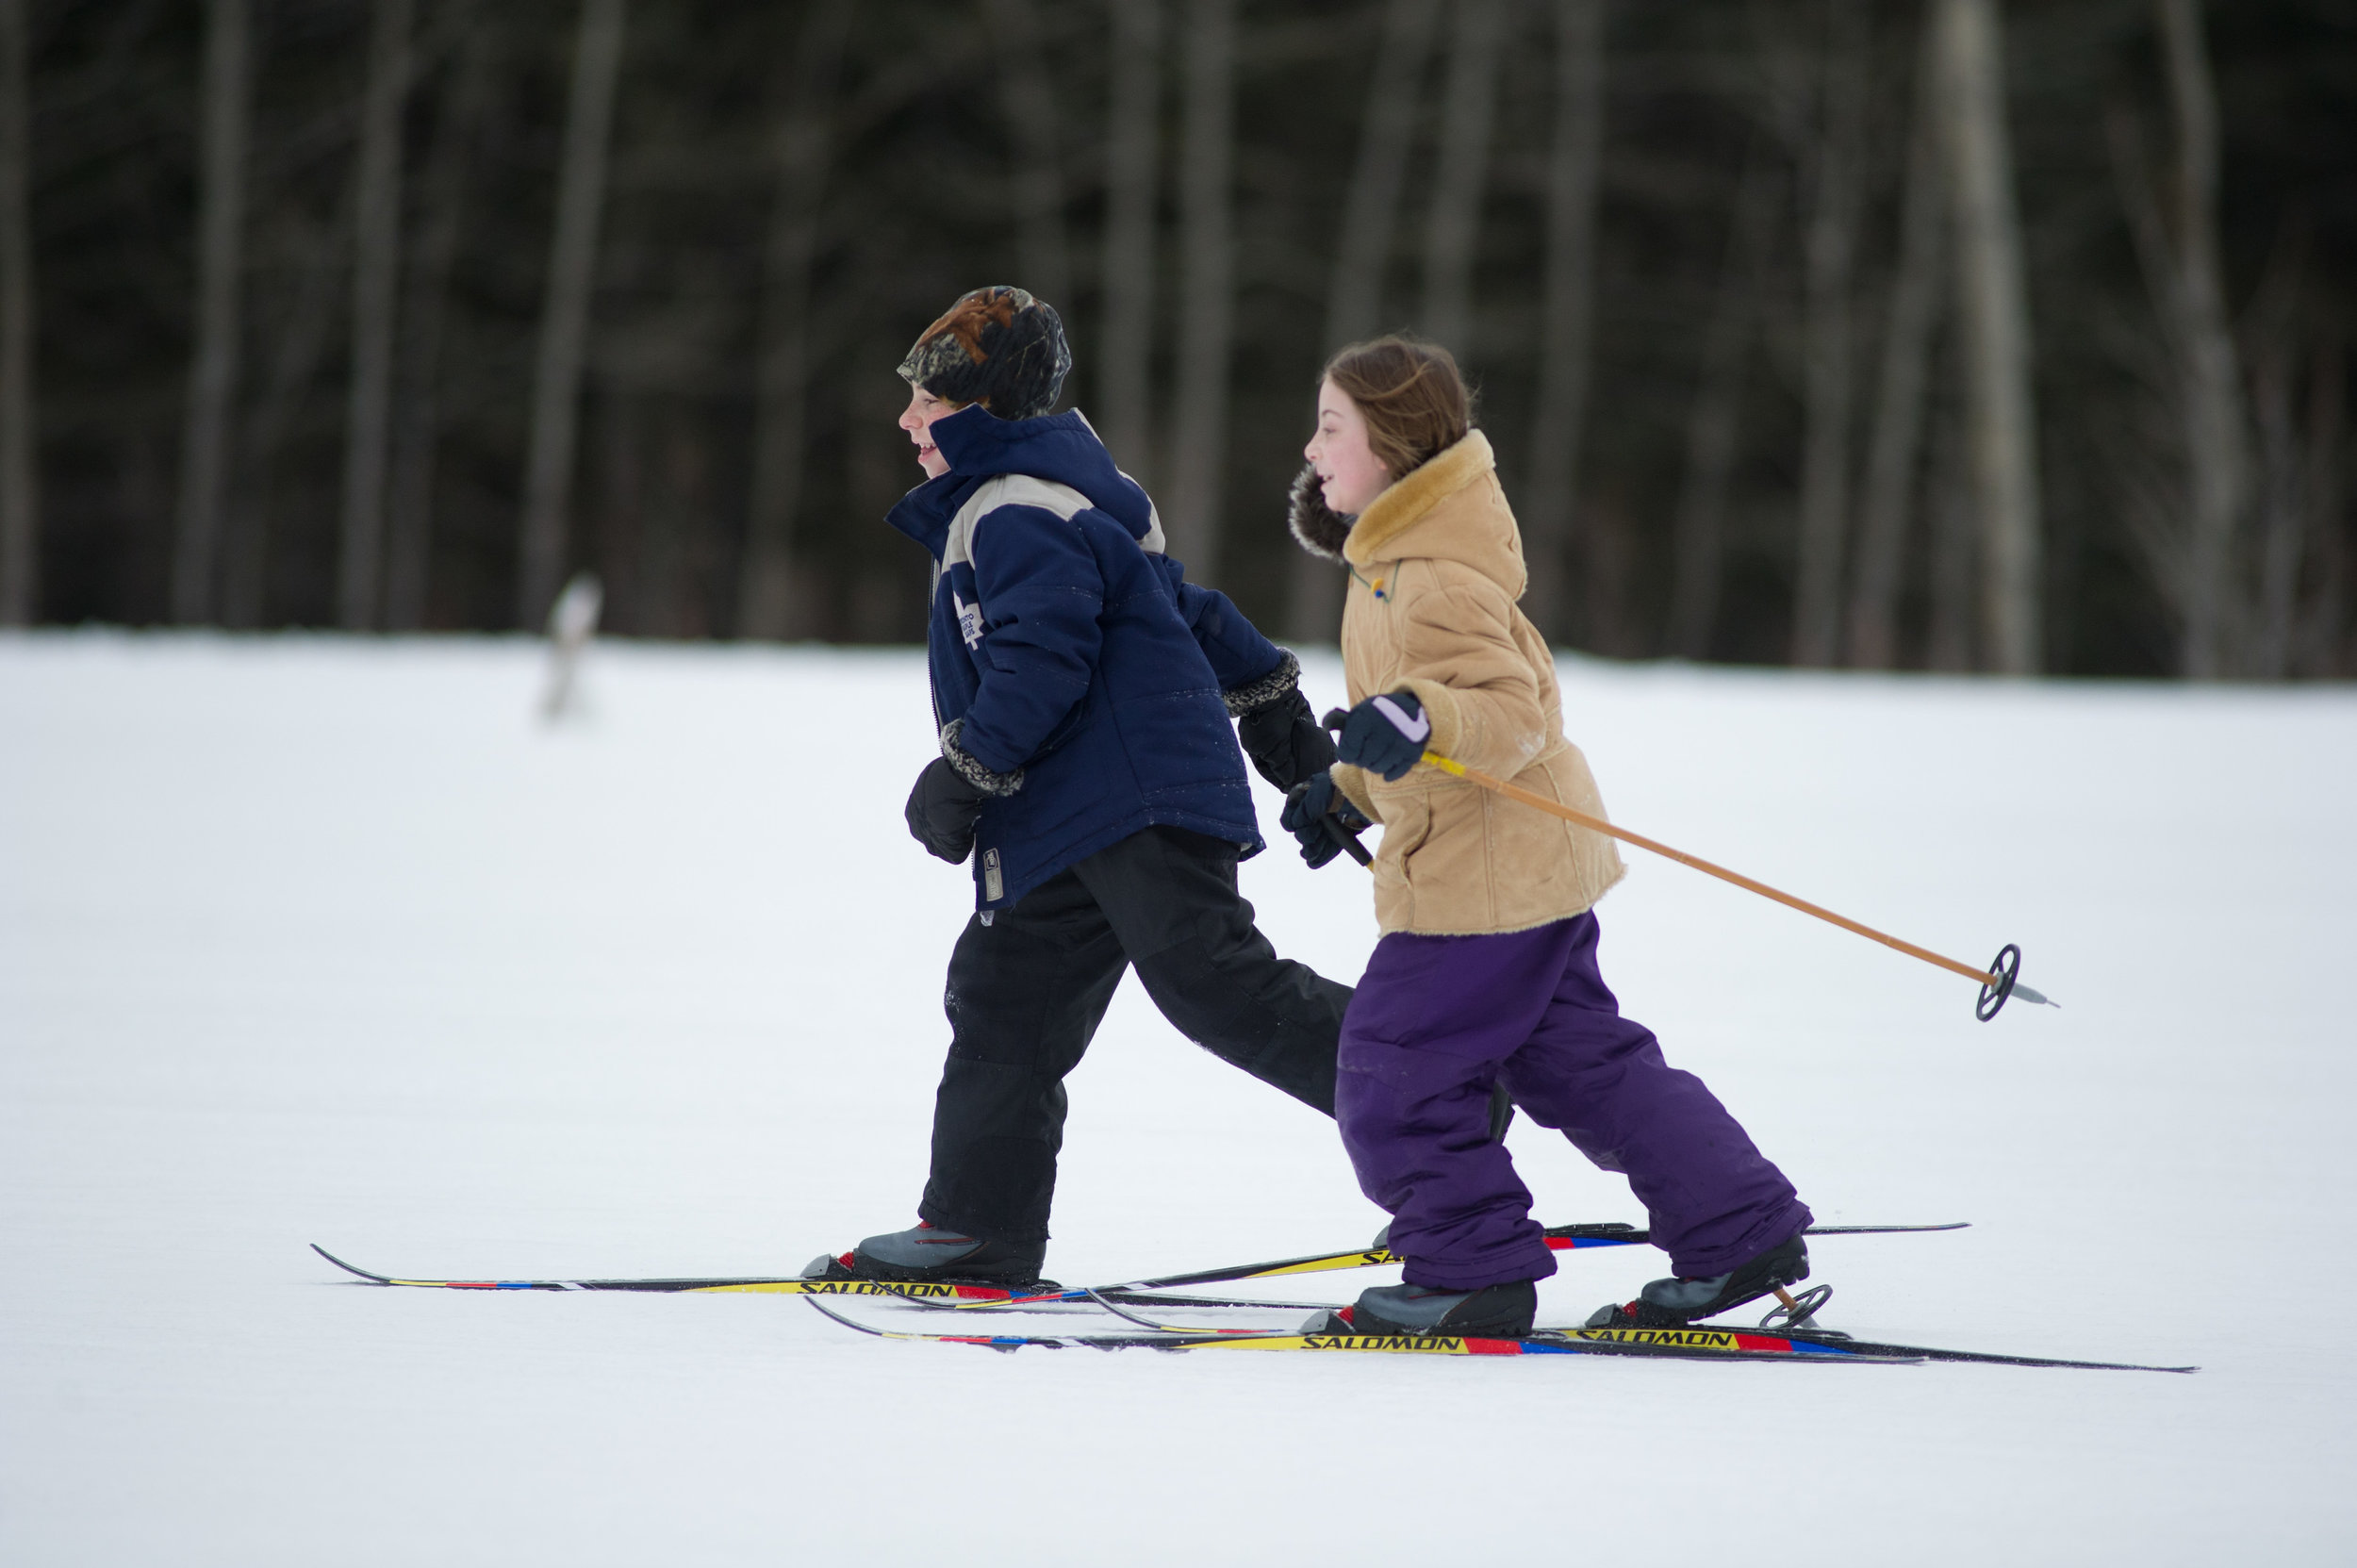 2 Children Skiing at Nordic Centre.jpg